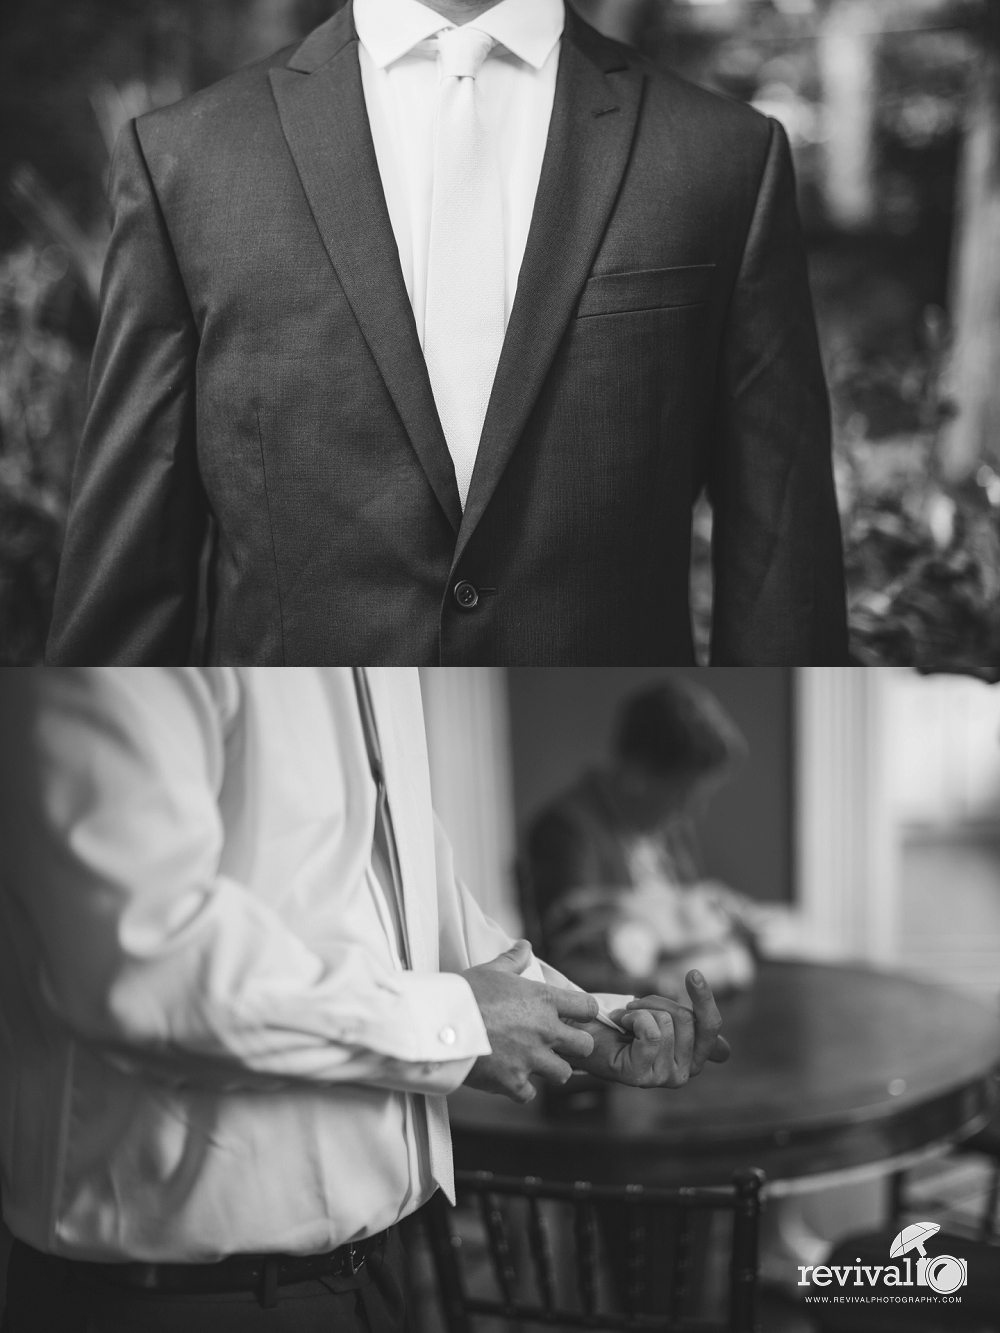 Emily + Chris: A Wedding at The Wickliffe House in the Heart of Charleston Photography by Revival Photography Fine Art Destination Wedding Photographers www.revivalphotography.com